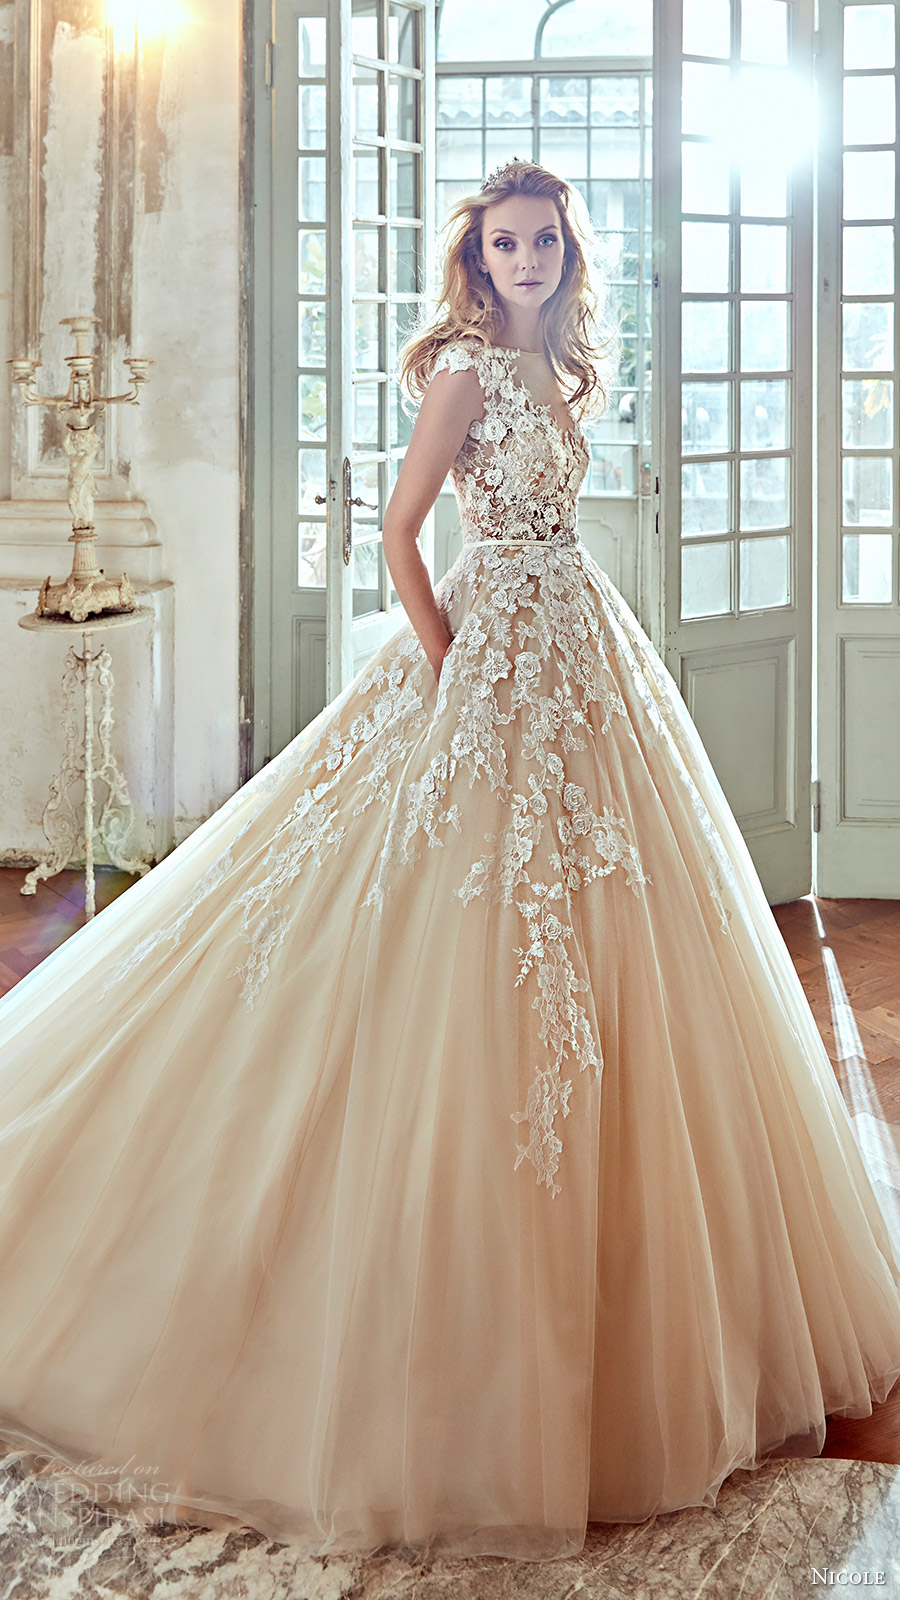 popular wedding dresses in 2016 part 1 ball gowns a